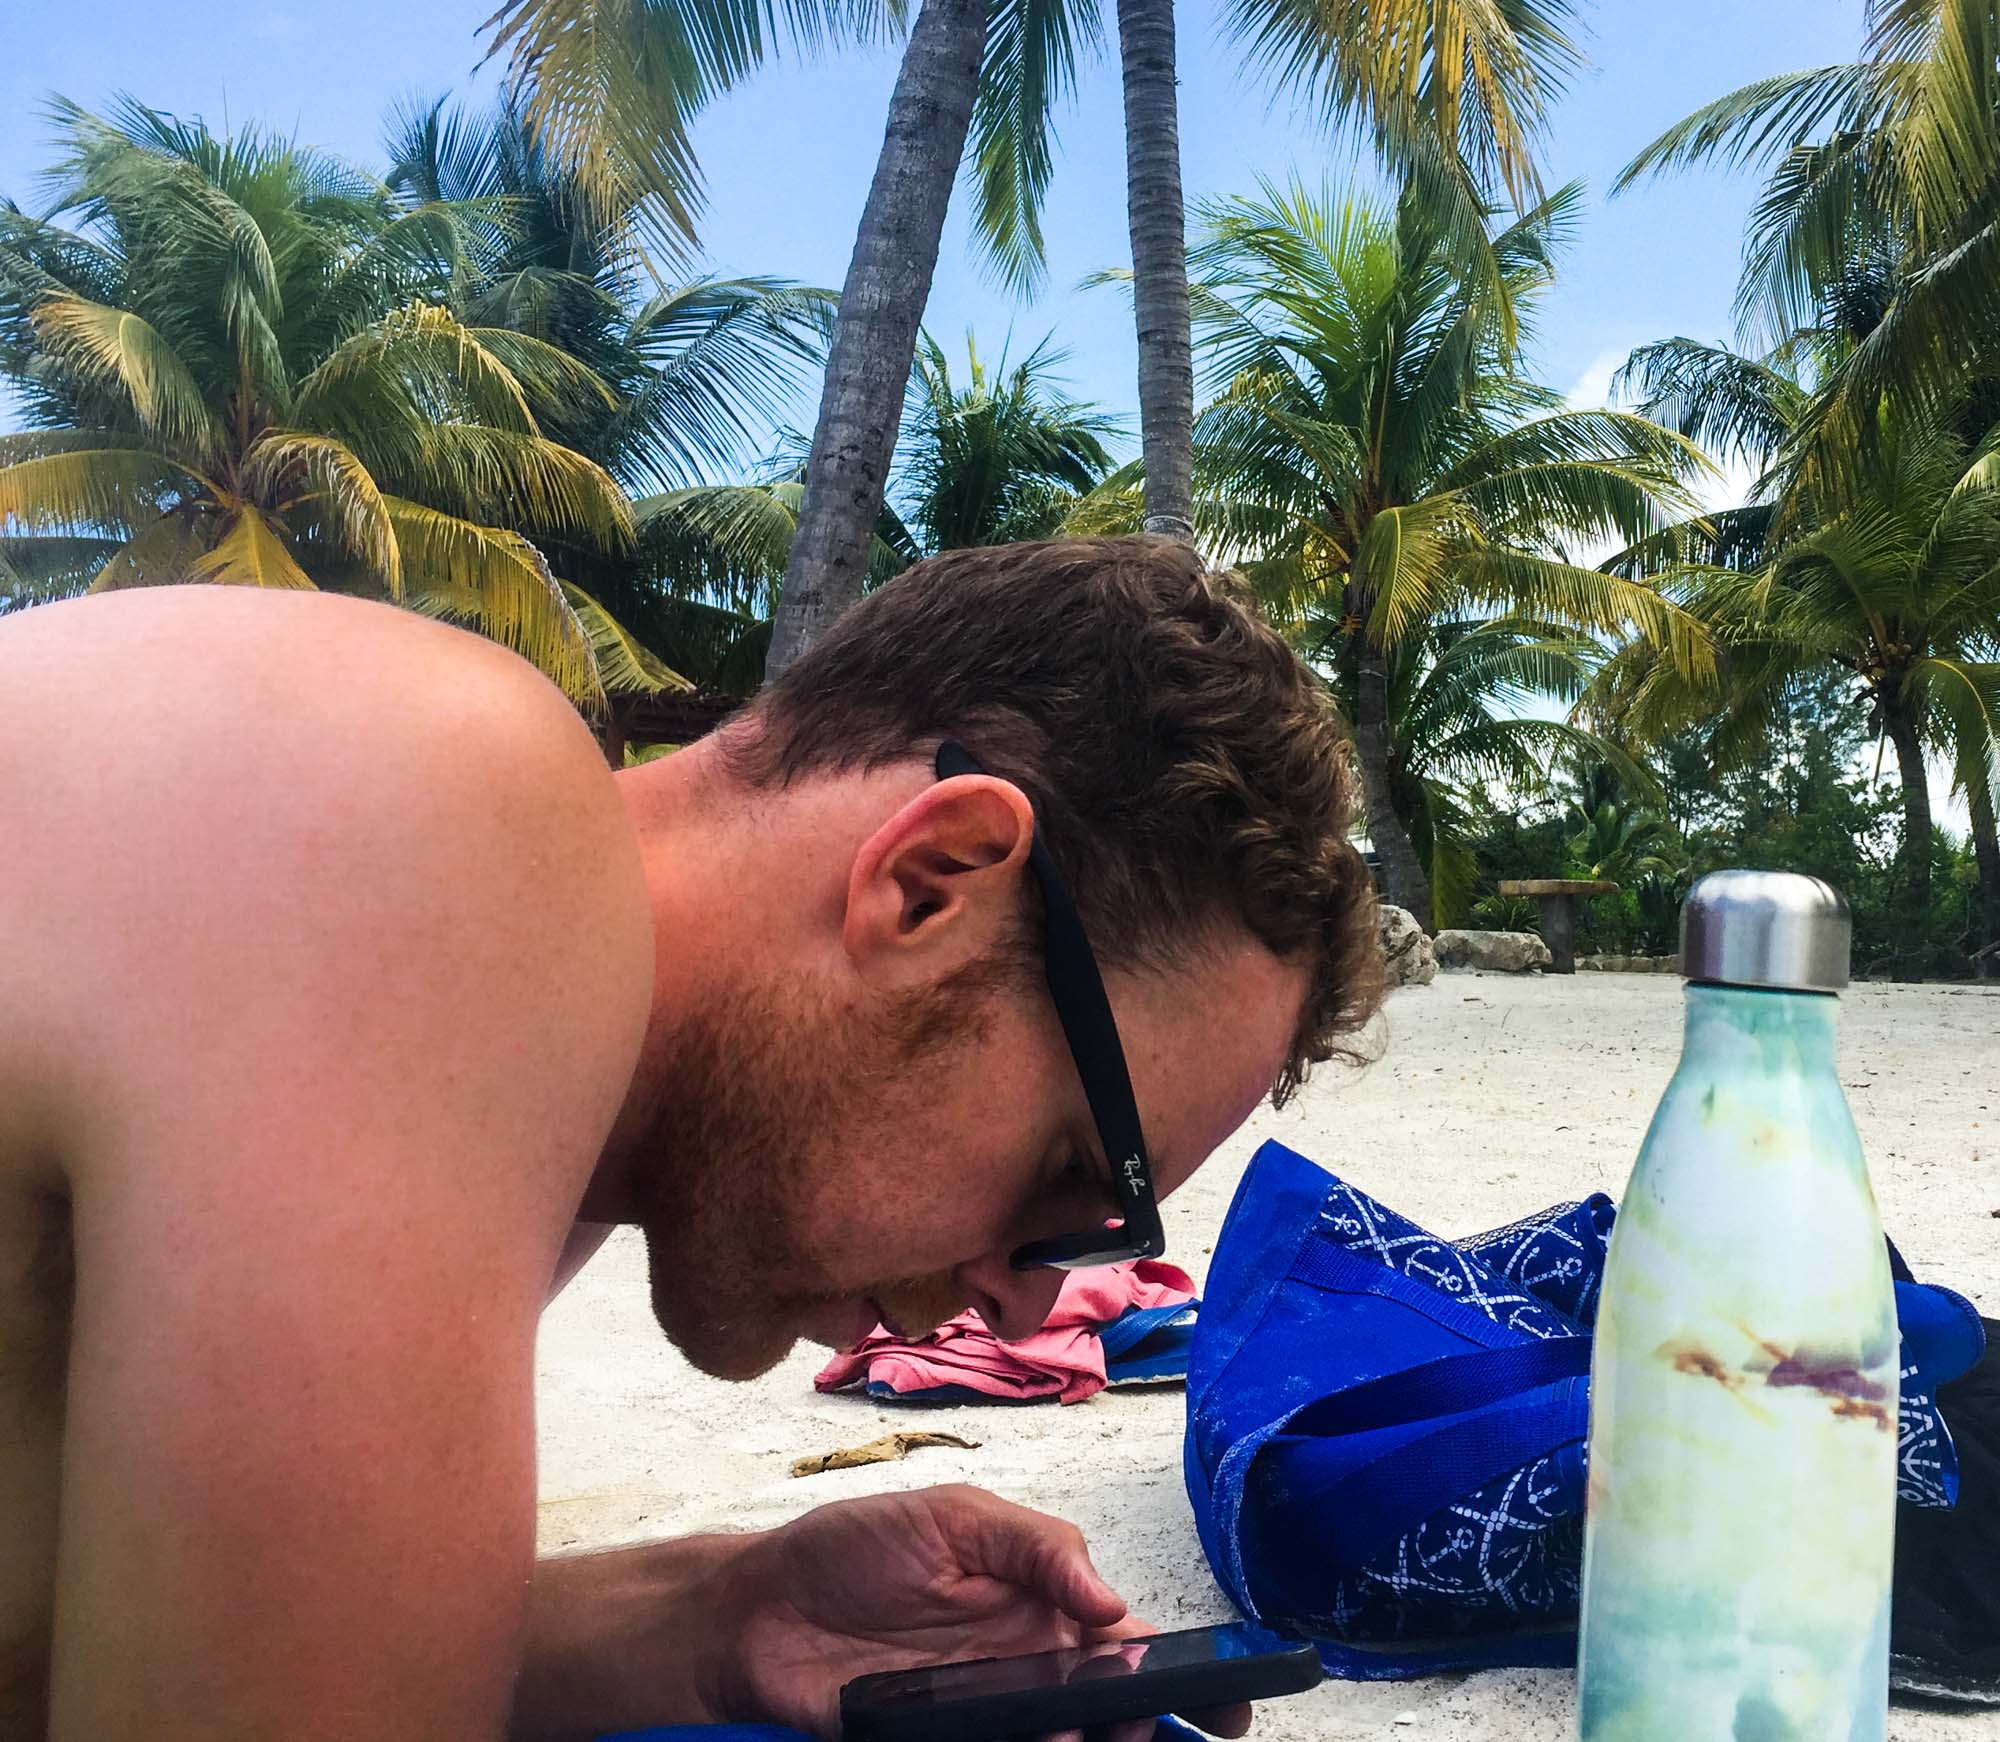 Man looking at iPhone to book flights on beach in Mexico.